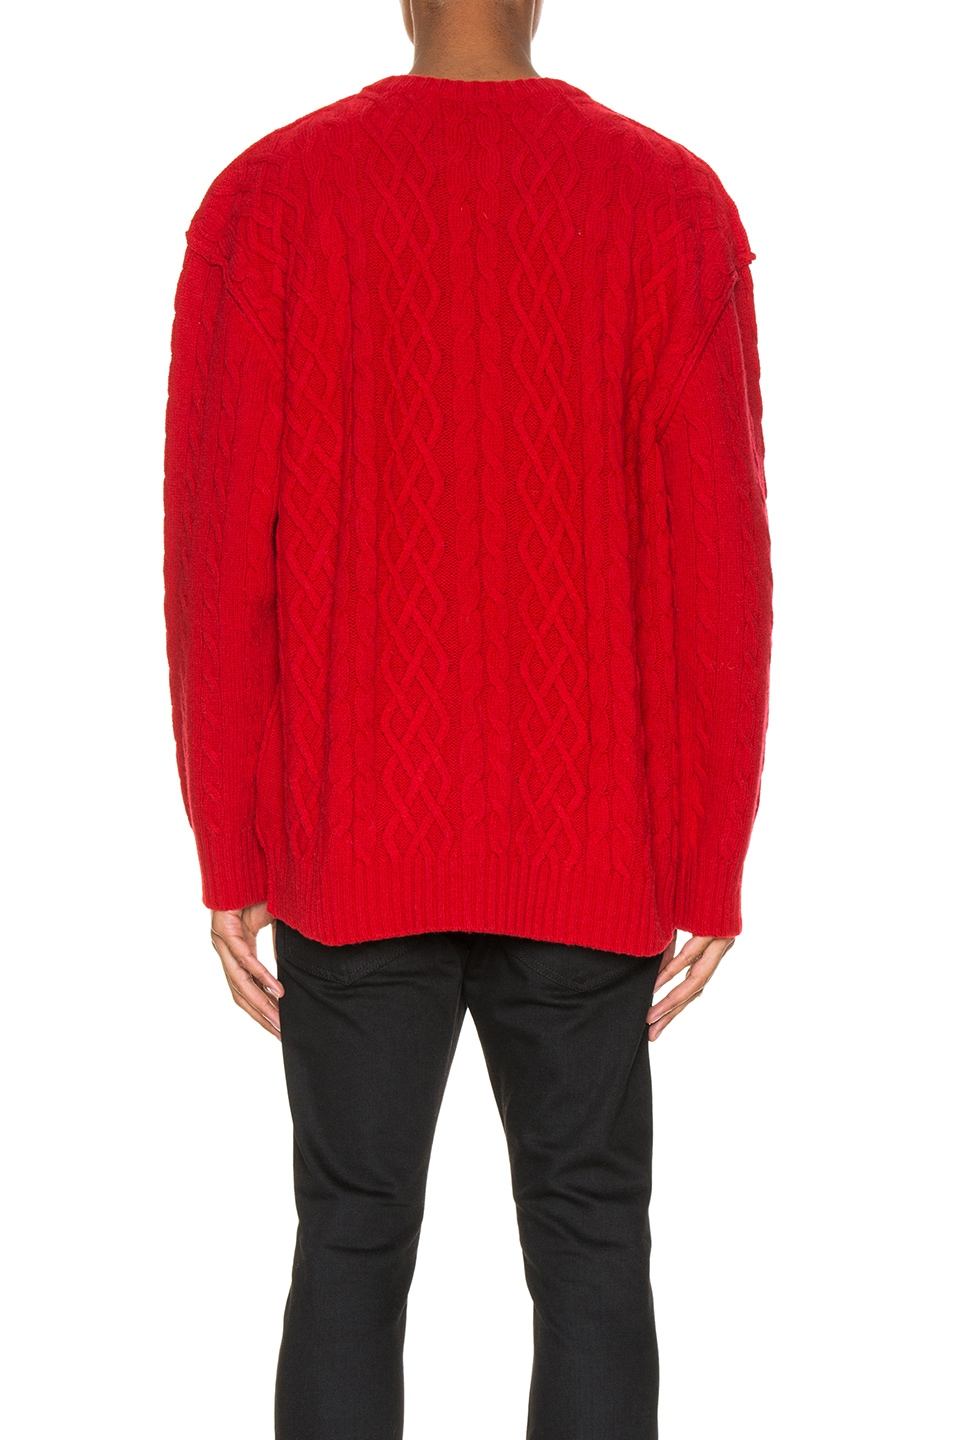 Image 3 of Raf Simons Printed Aran Knit Sweater in Red